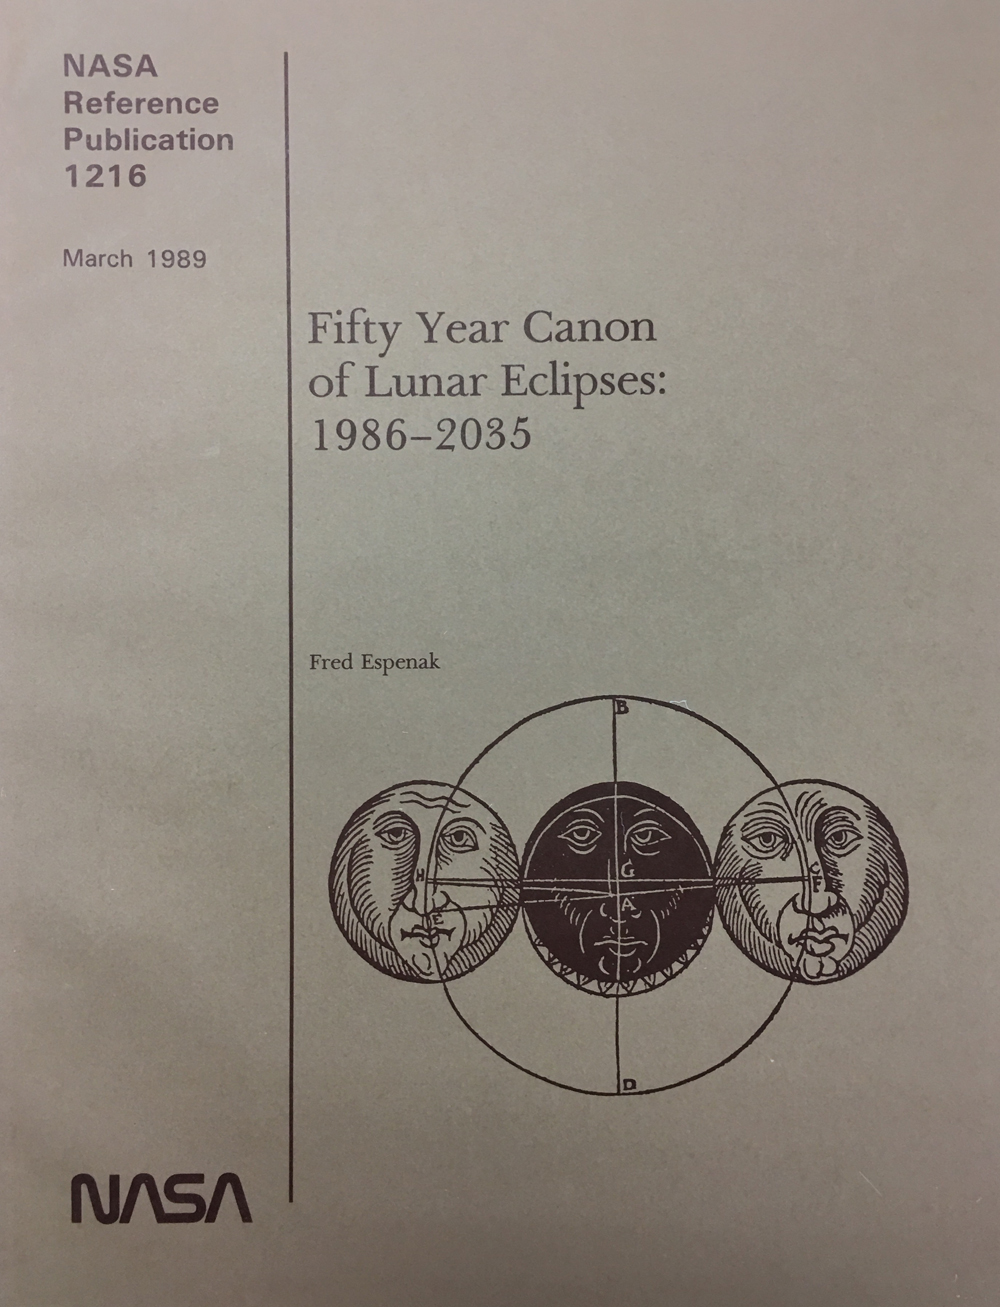 Fifty Year Canon of Lunar Eclipses.jpg